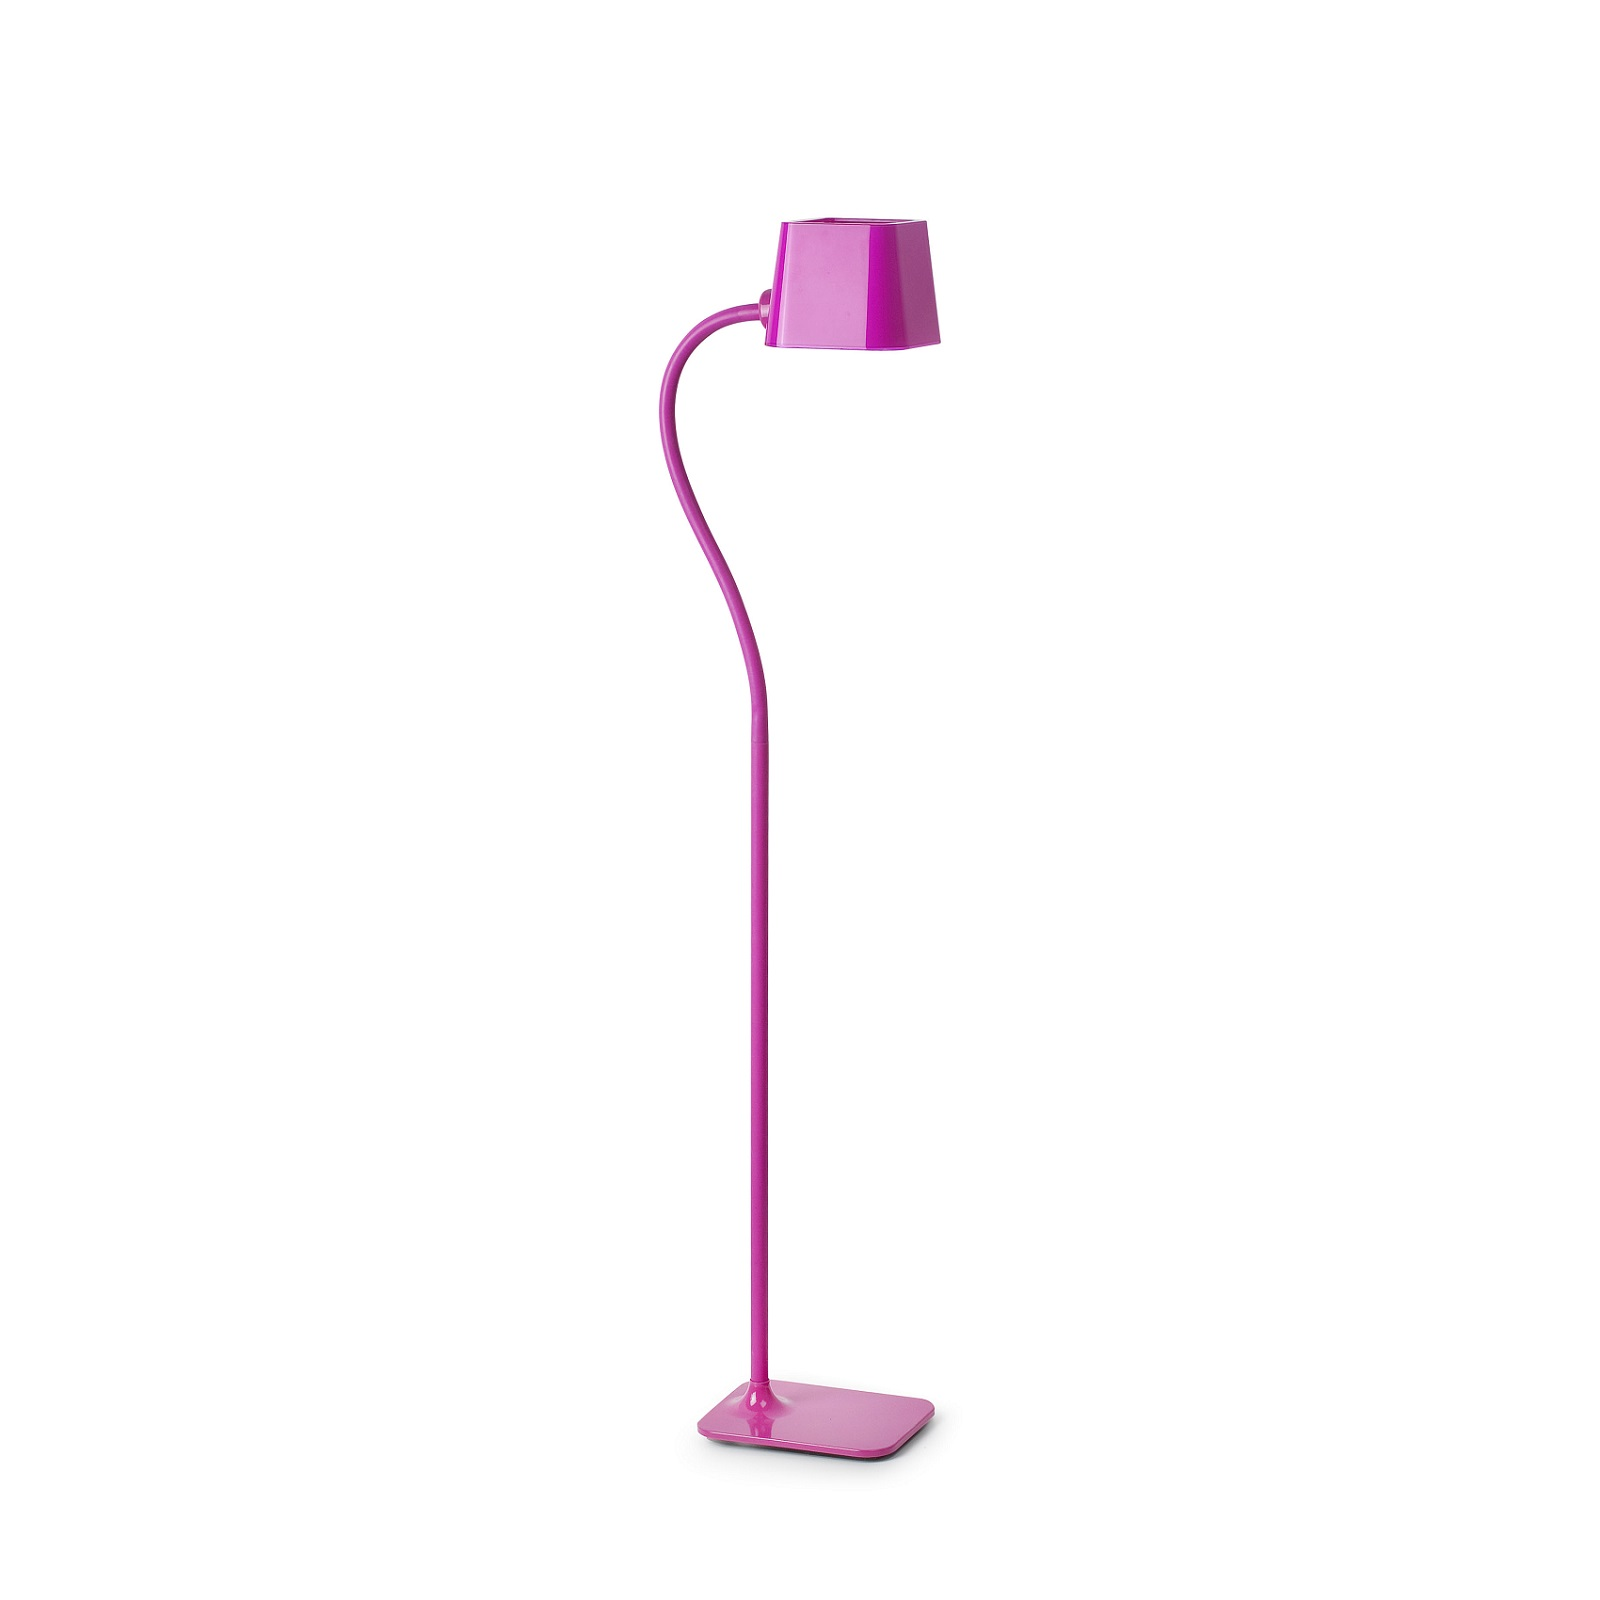 Lampadaire design int rieur flexi faro rose for Lampadaire interieur design